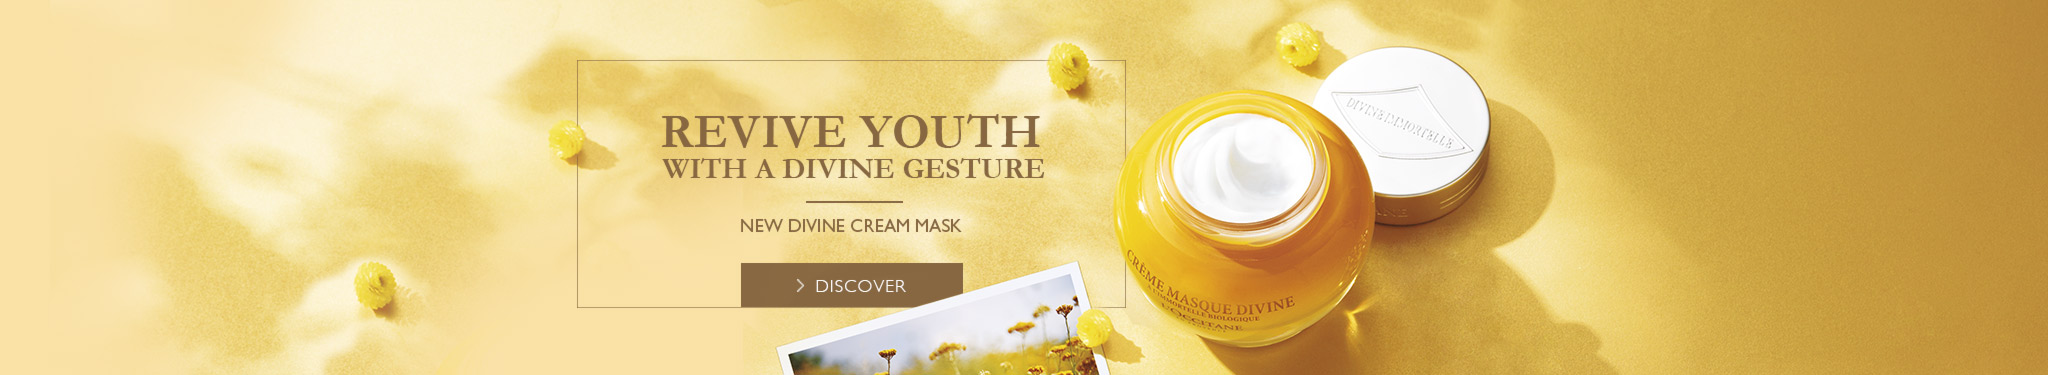 HP_Divine Cream Mask